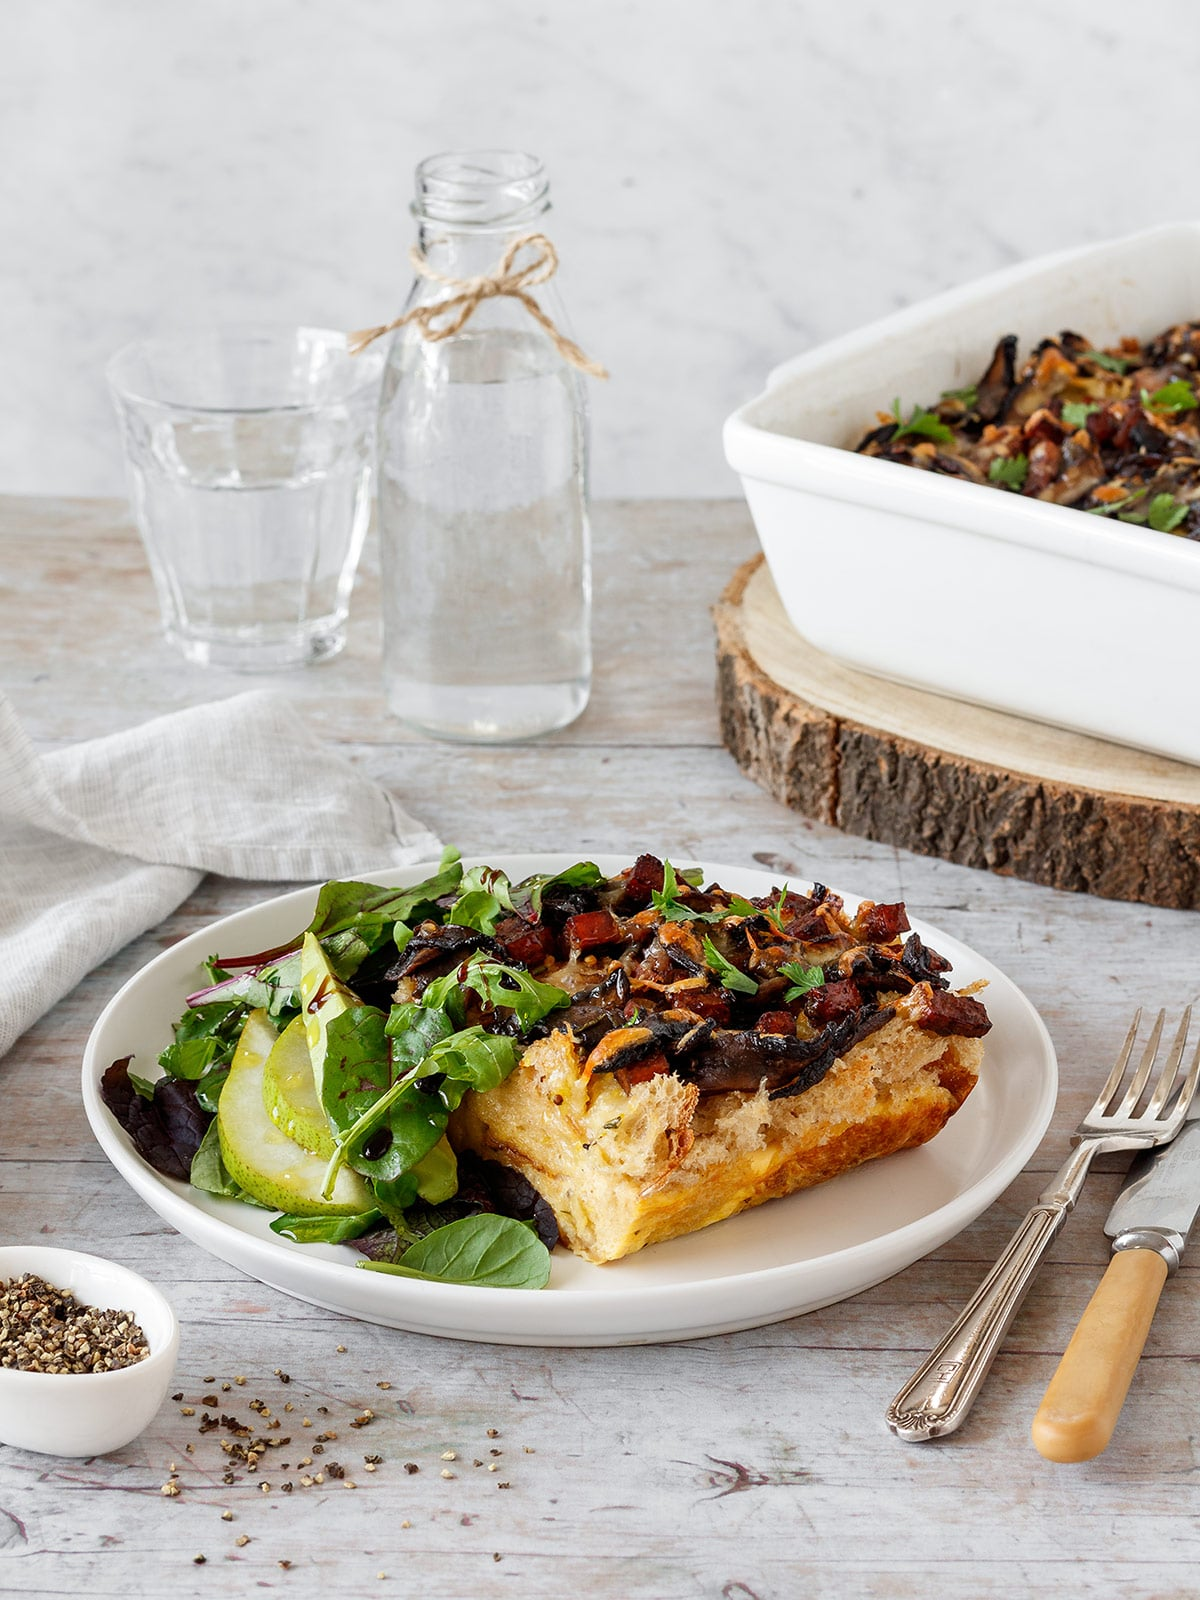 Savoury bread and butter pudding topped with mushrooms and chorizo, with a side of green salad.